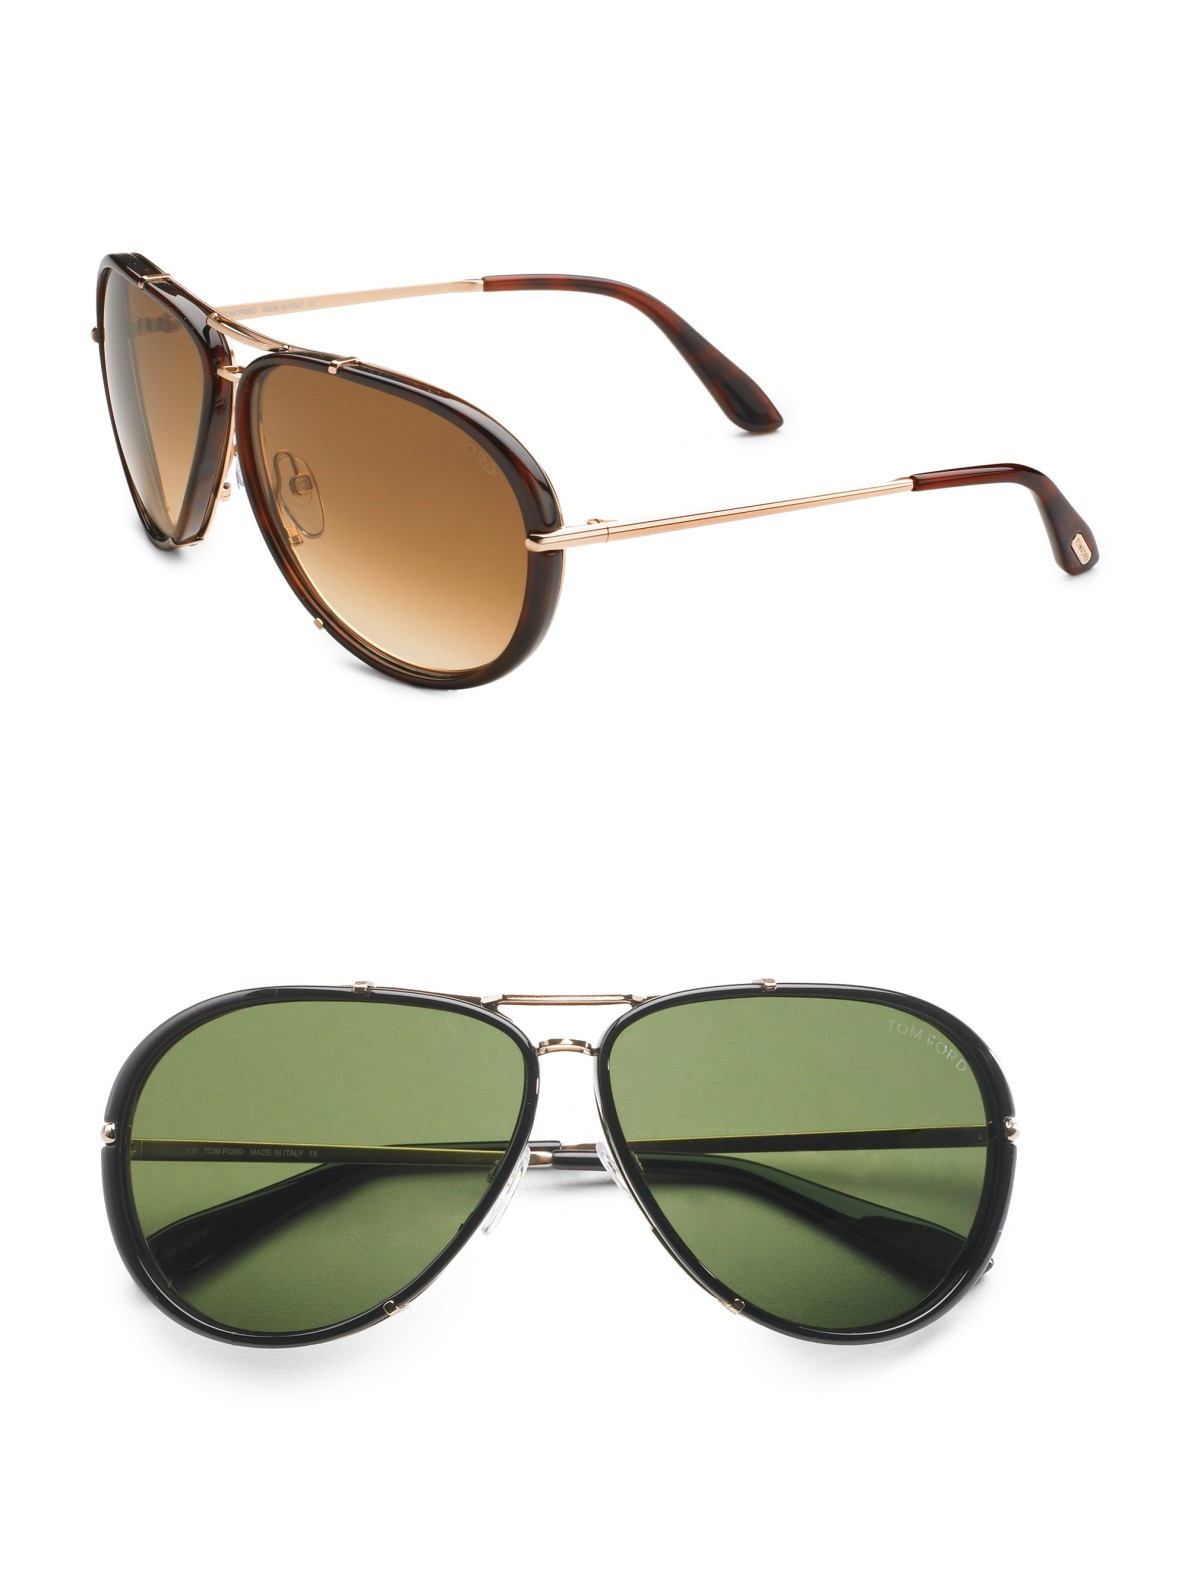 bc945893f8 Lyst - Tom Ford Cyrille Aviator Sunglasses in Black